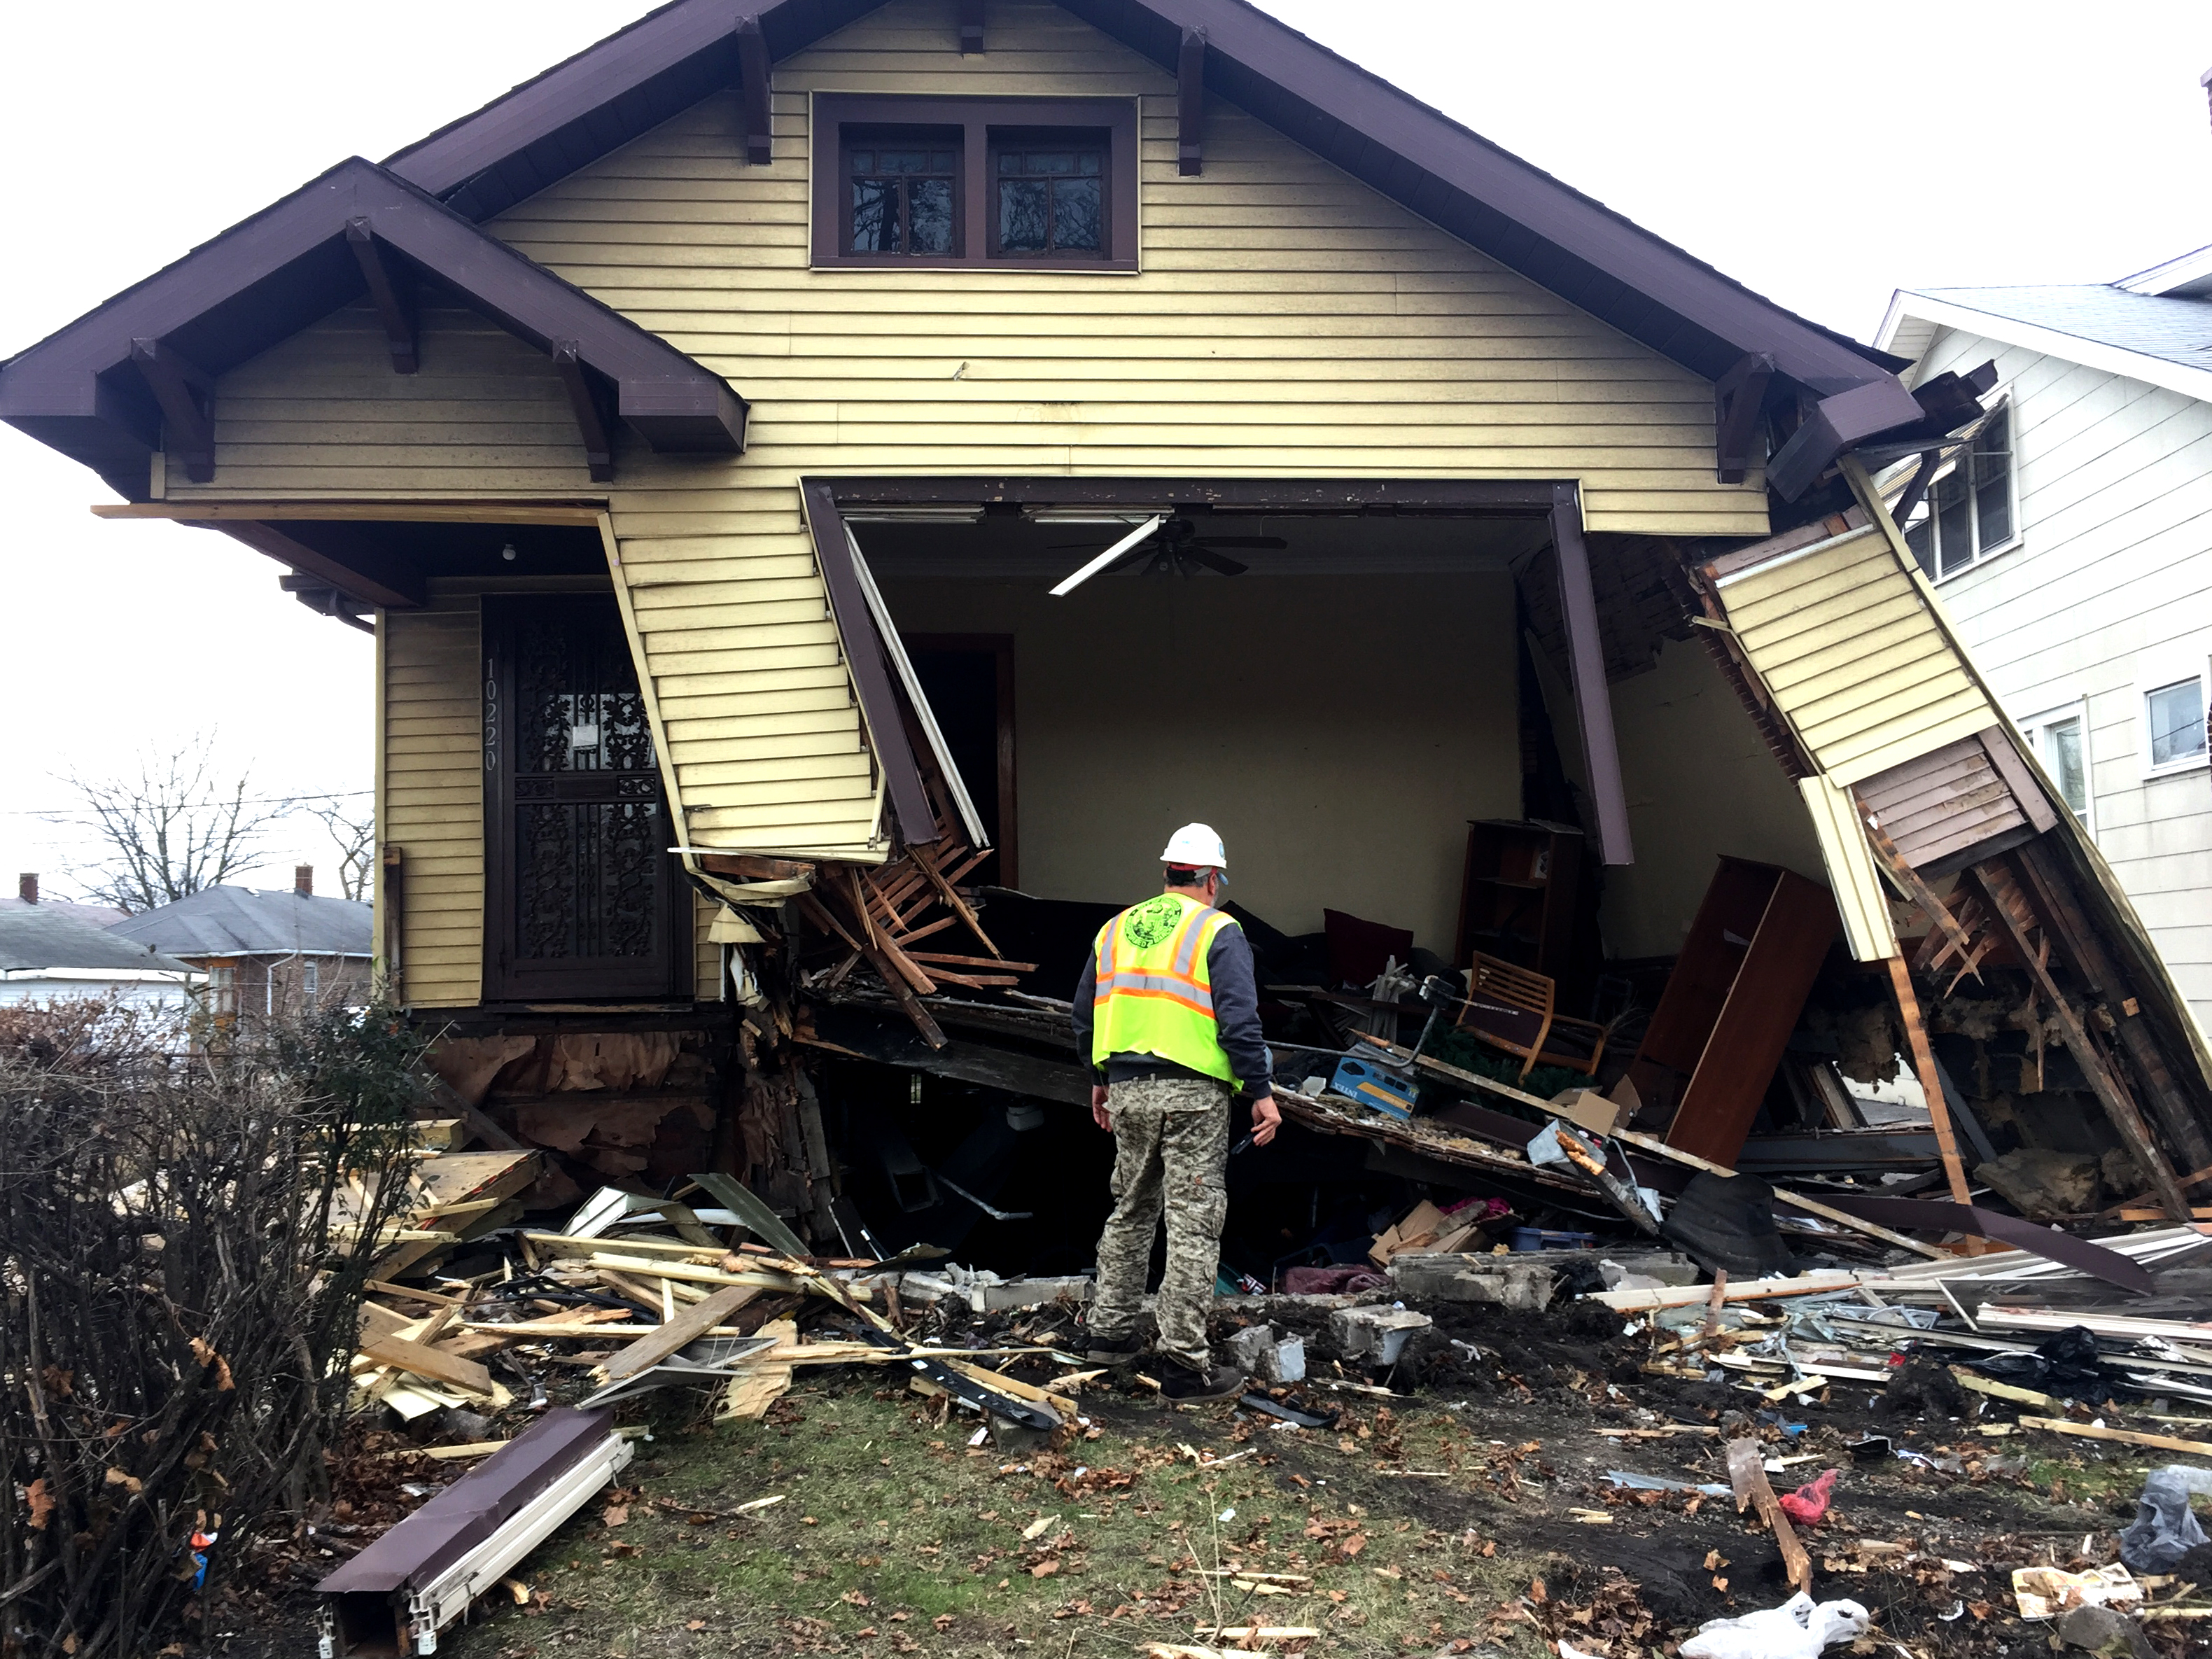 A worker with the city's Streets and Sanitation Department inspects a home at 102nd Street and Wentworth Avenue after a vehicle crashed into it Thursday, leaving one person dead and two children hospitalized.